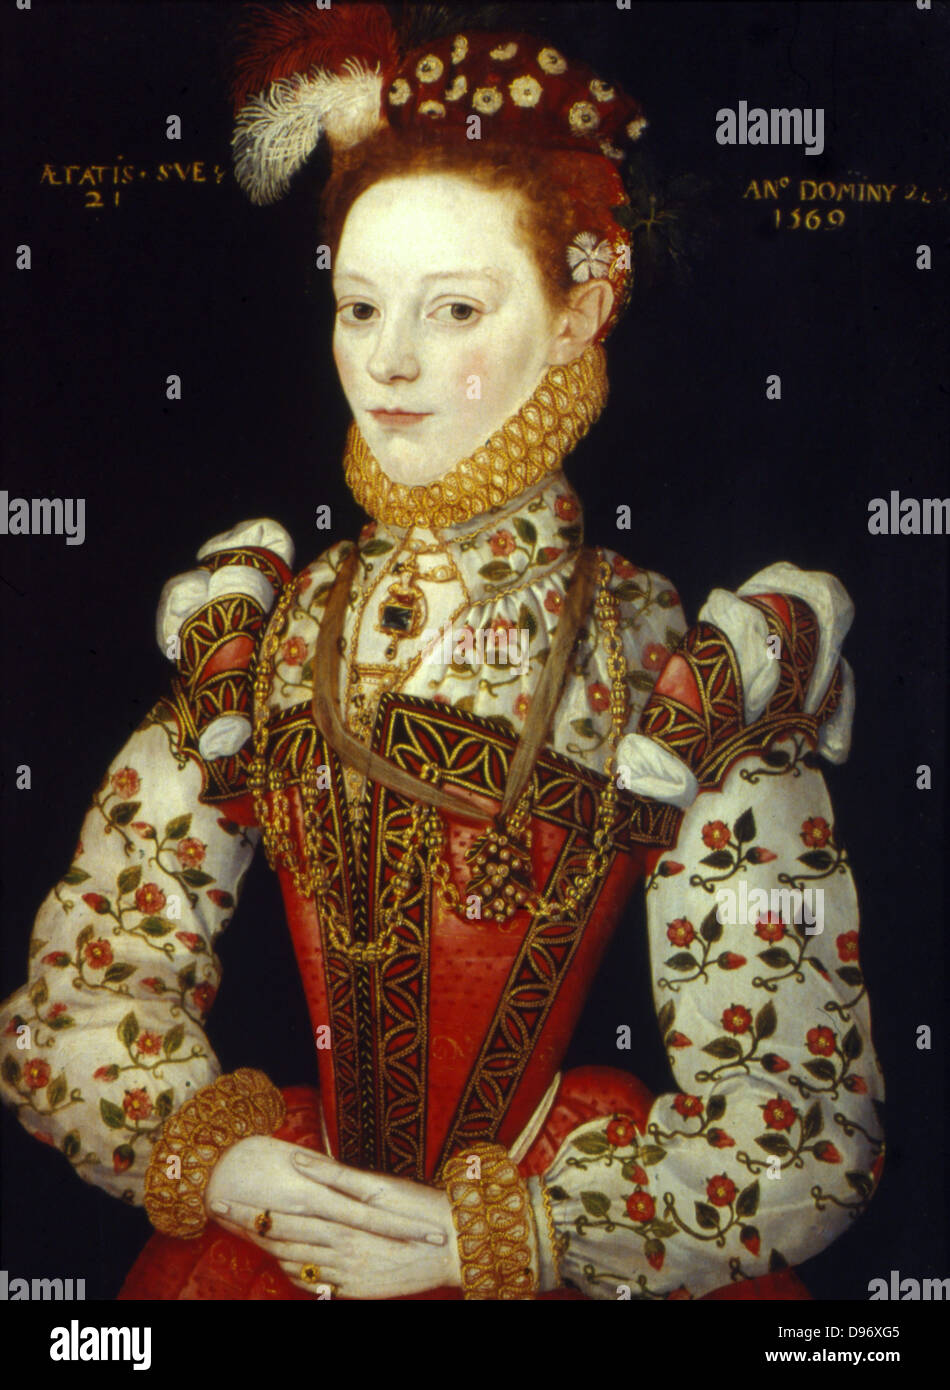 A Young Woman of 21, (1569). English School 16th century. - Stock Image